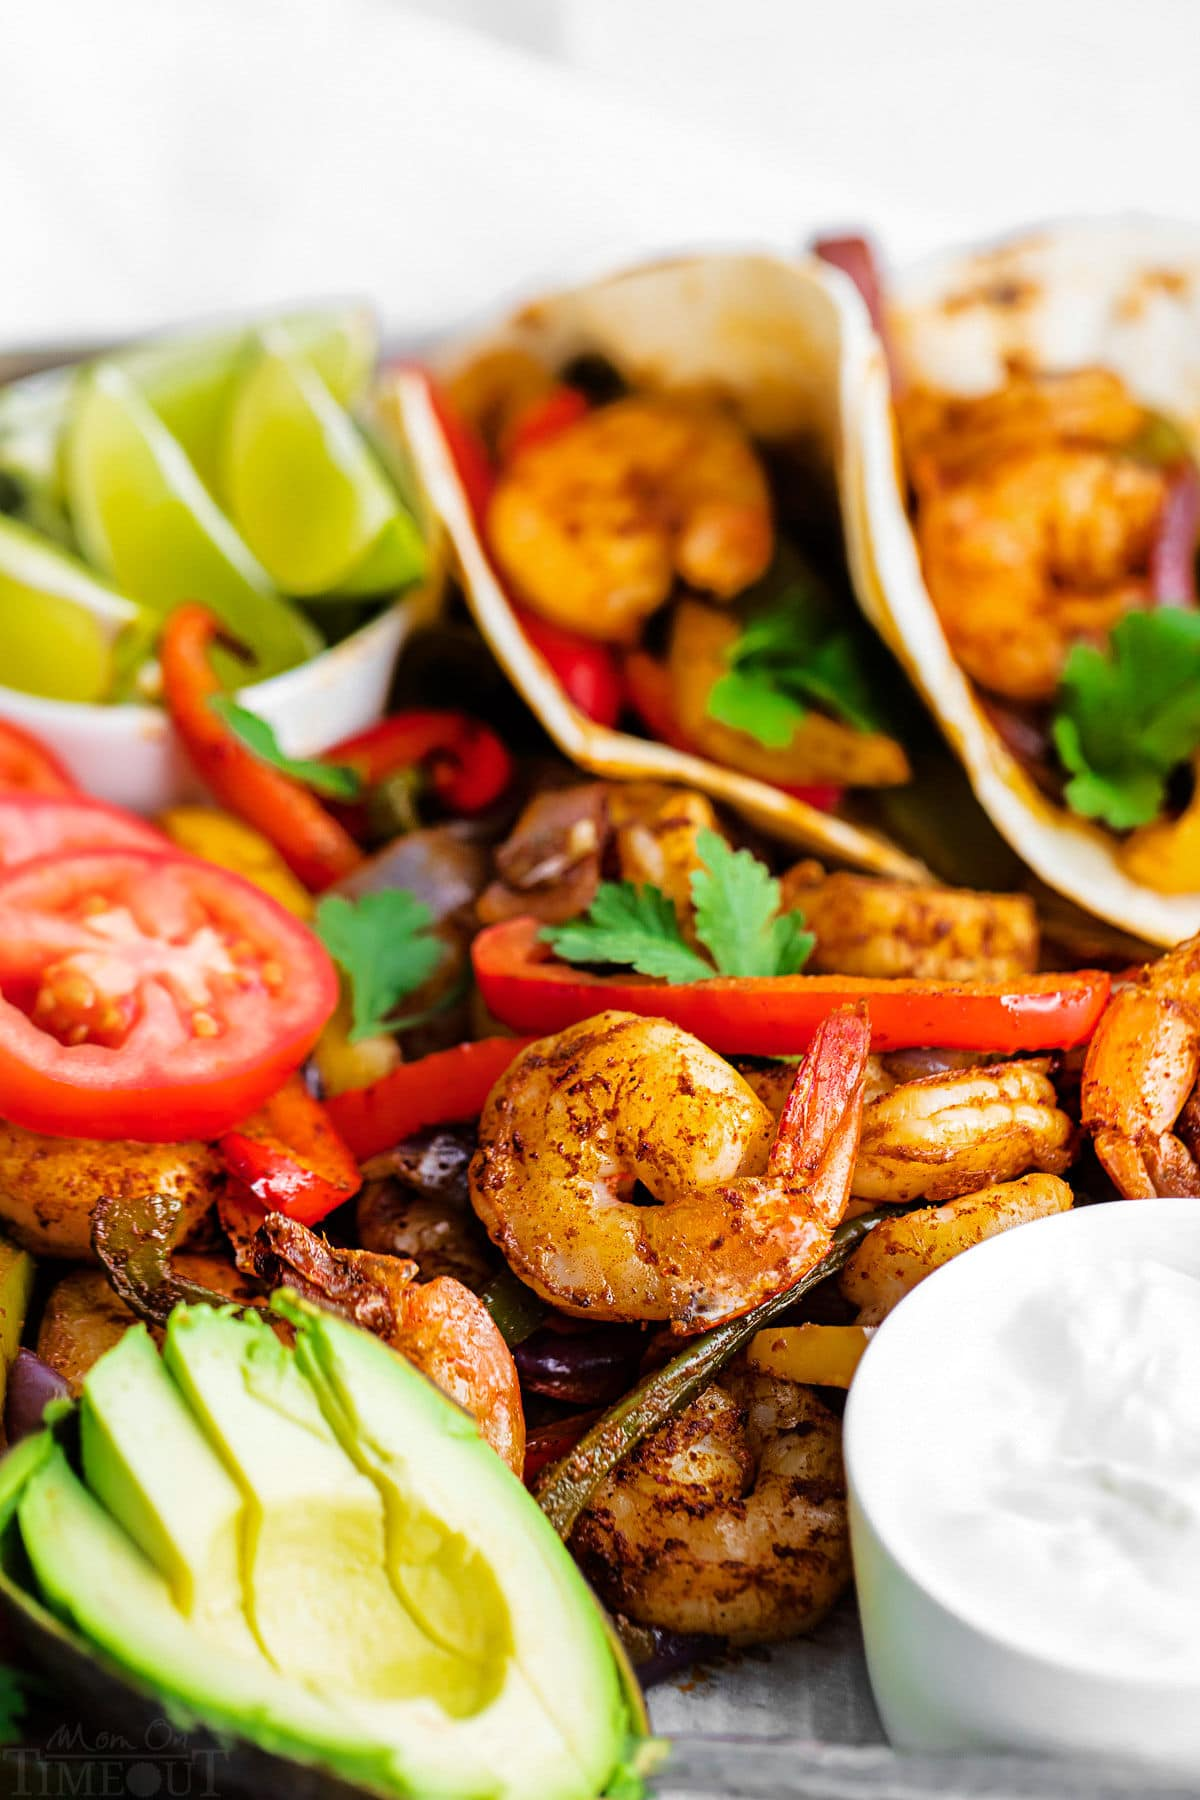 close up look at the shrimp fajitas on sheet pan with sliced avocado and sour cream.